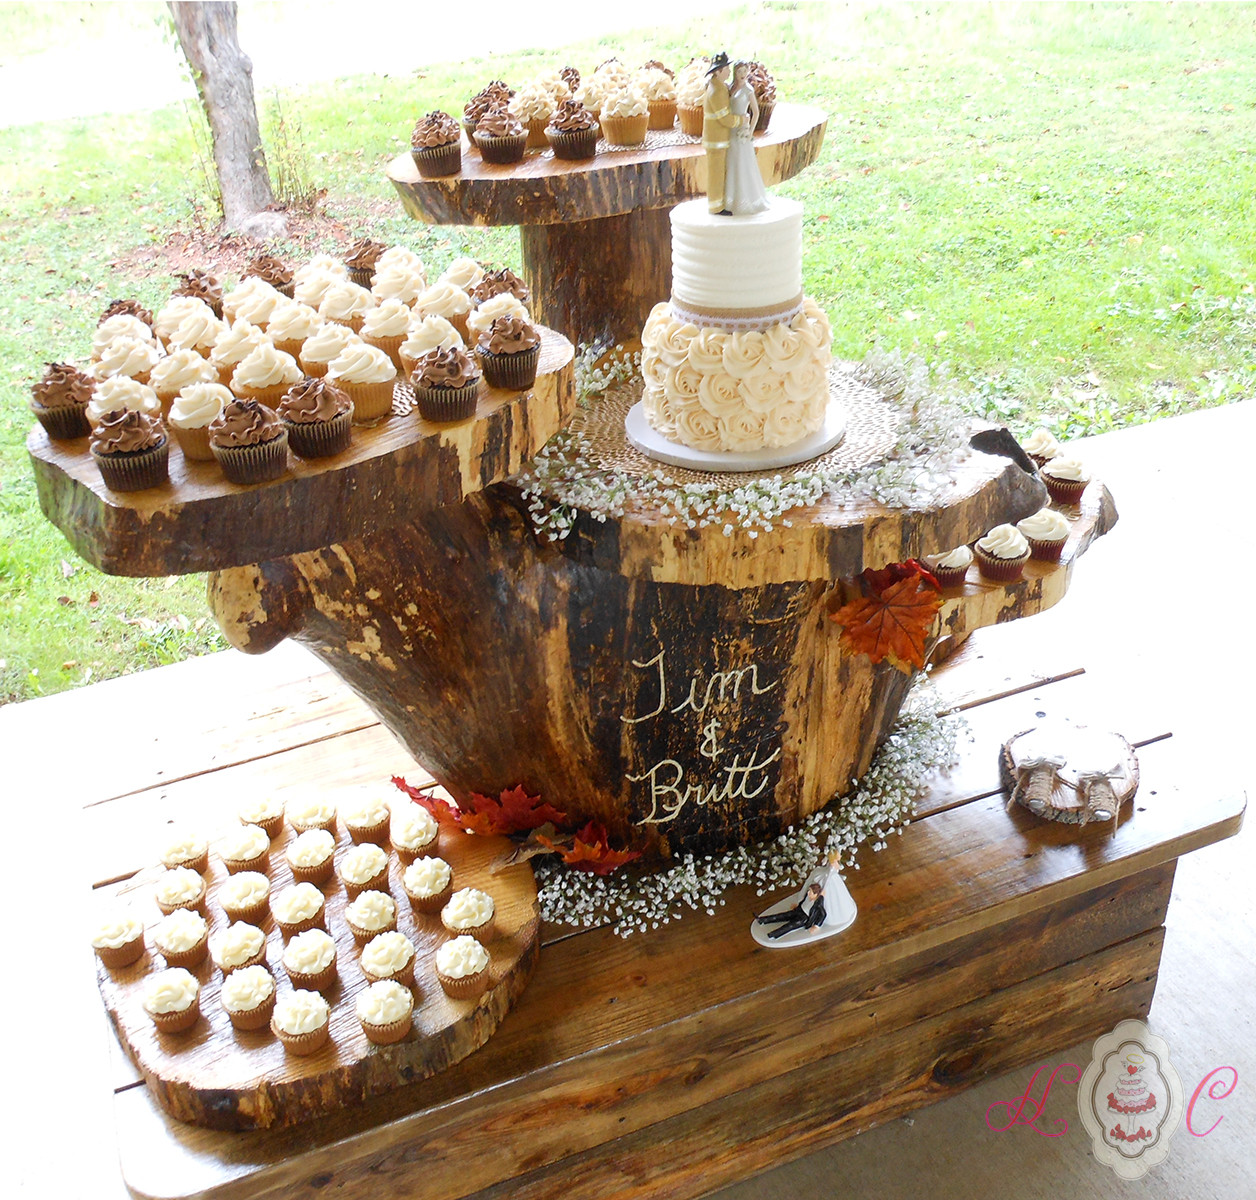 Rustic Wedding Cakes With Cupcakes  Wedding Cakes in Marietta Parkersburg & More Heavenly